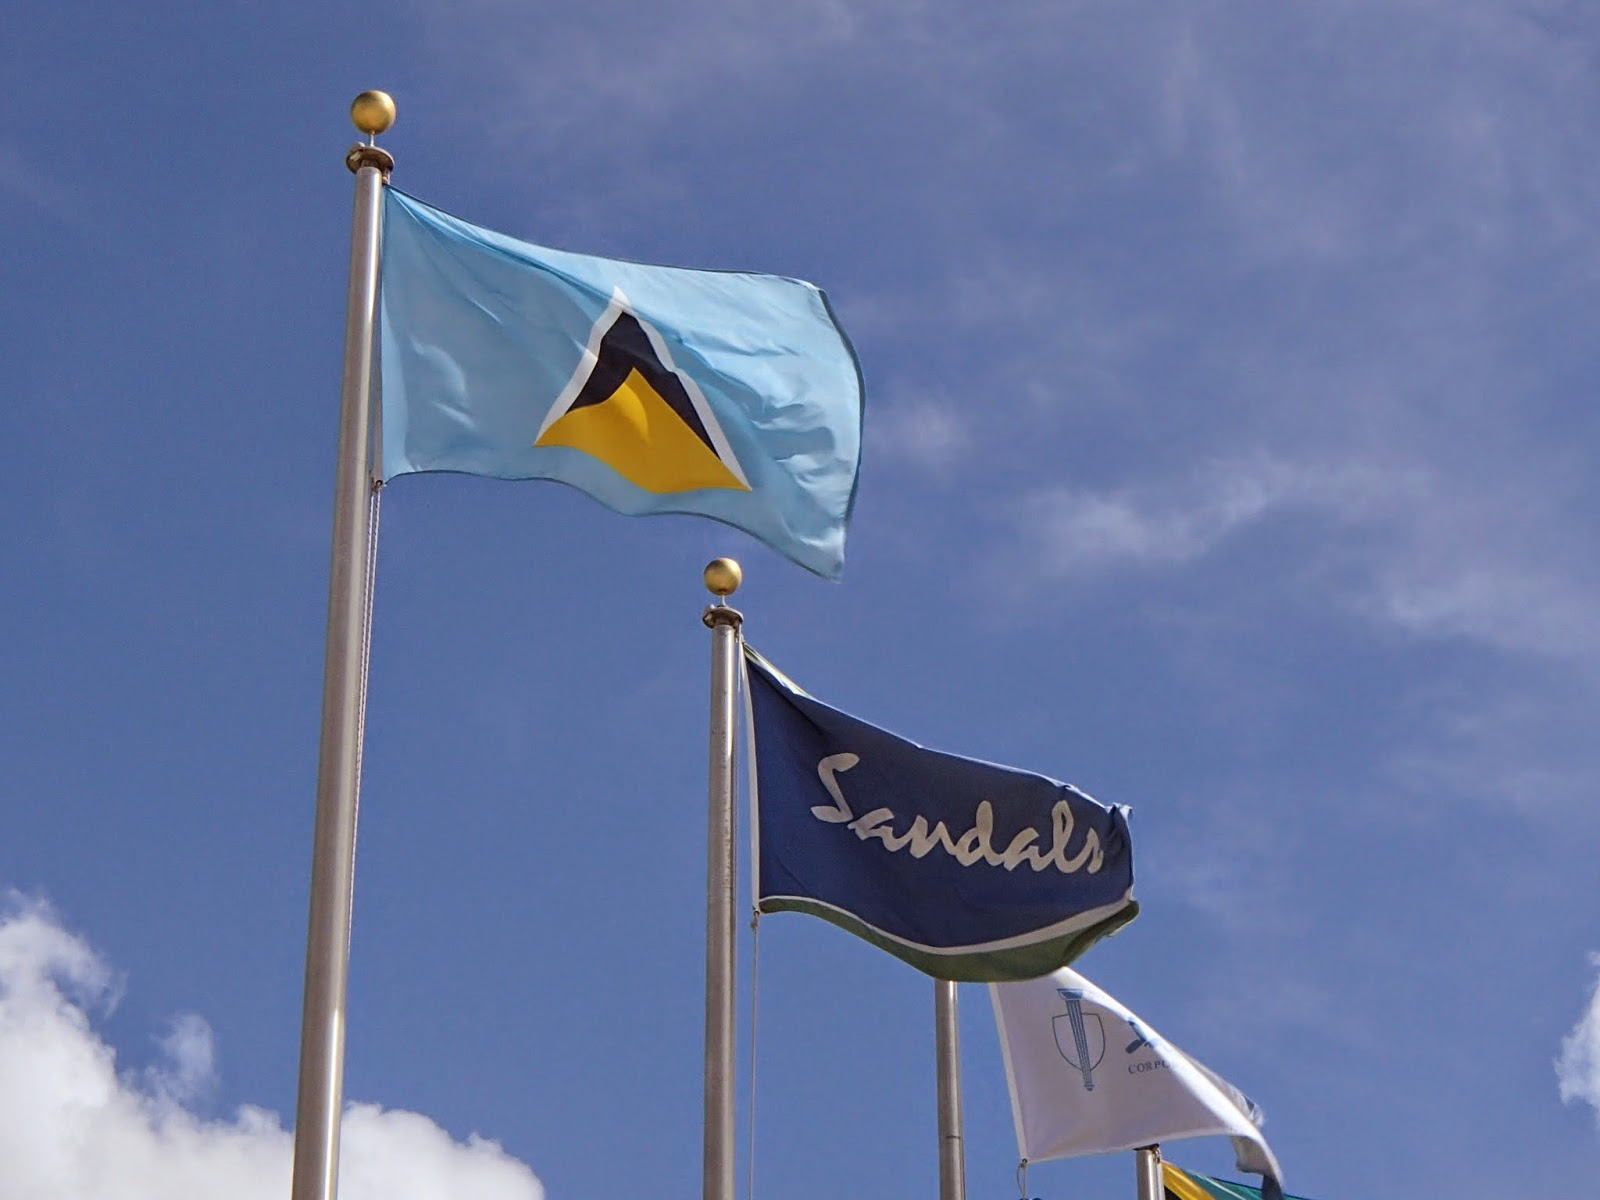 Sandals flags